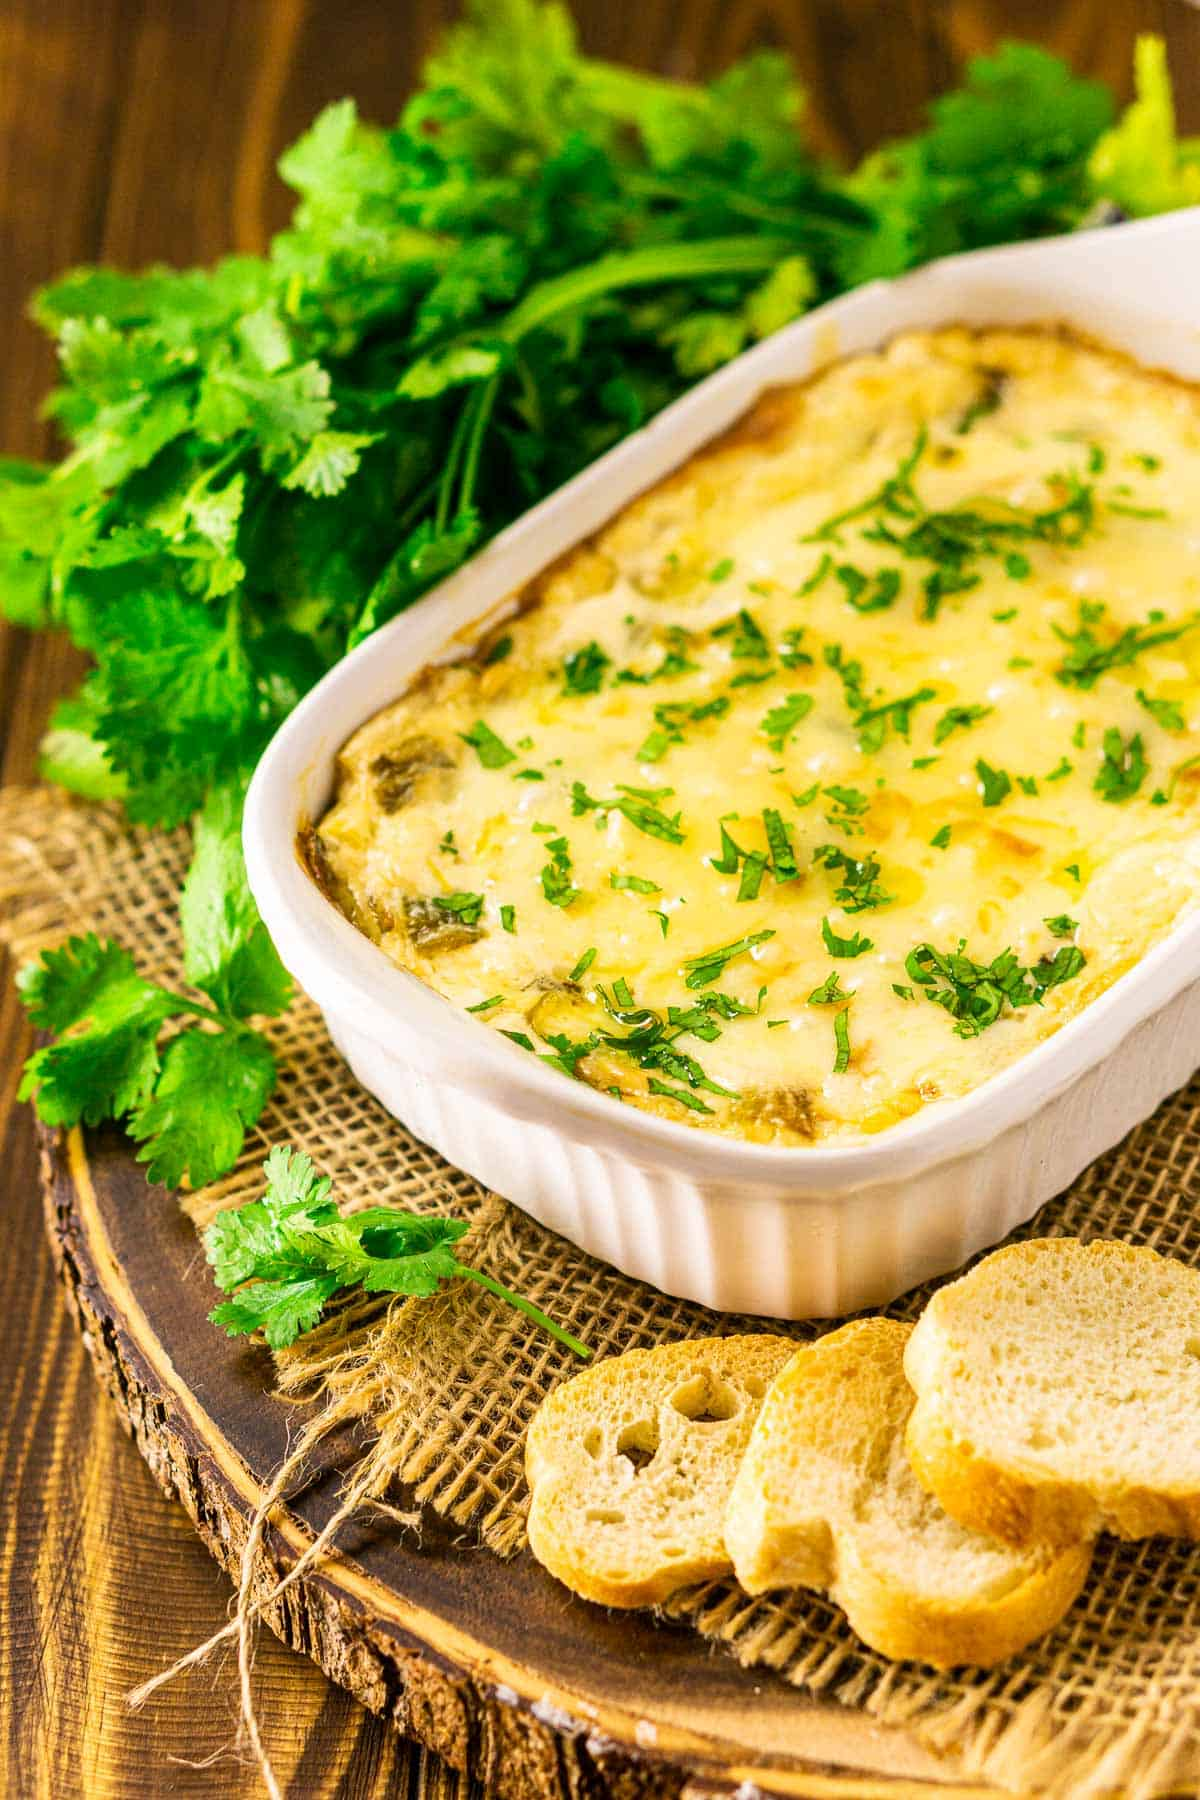 The green chile dip with a bundle of cilantro behind it and bread to the side.